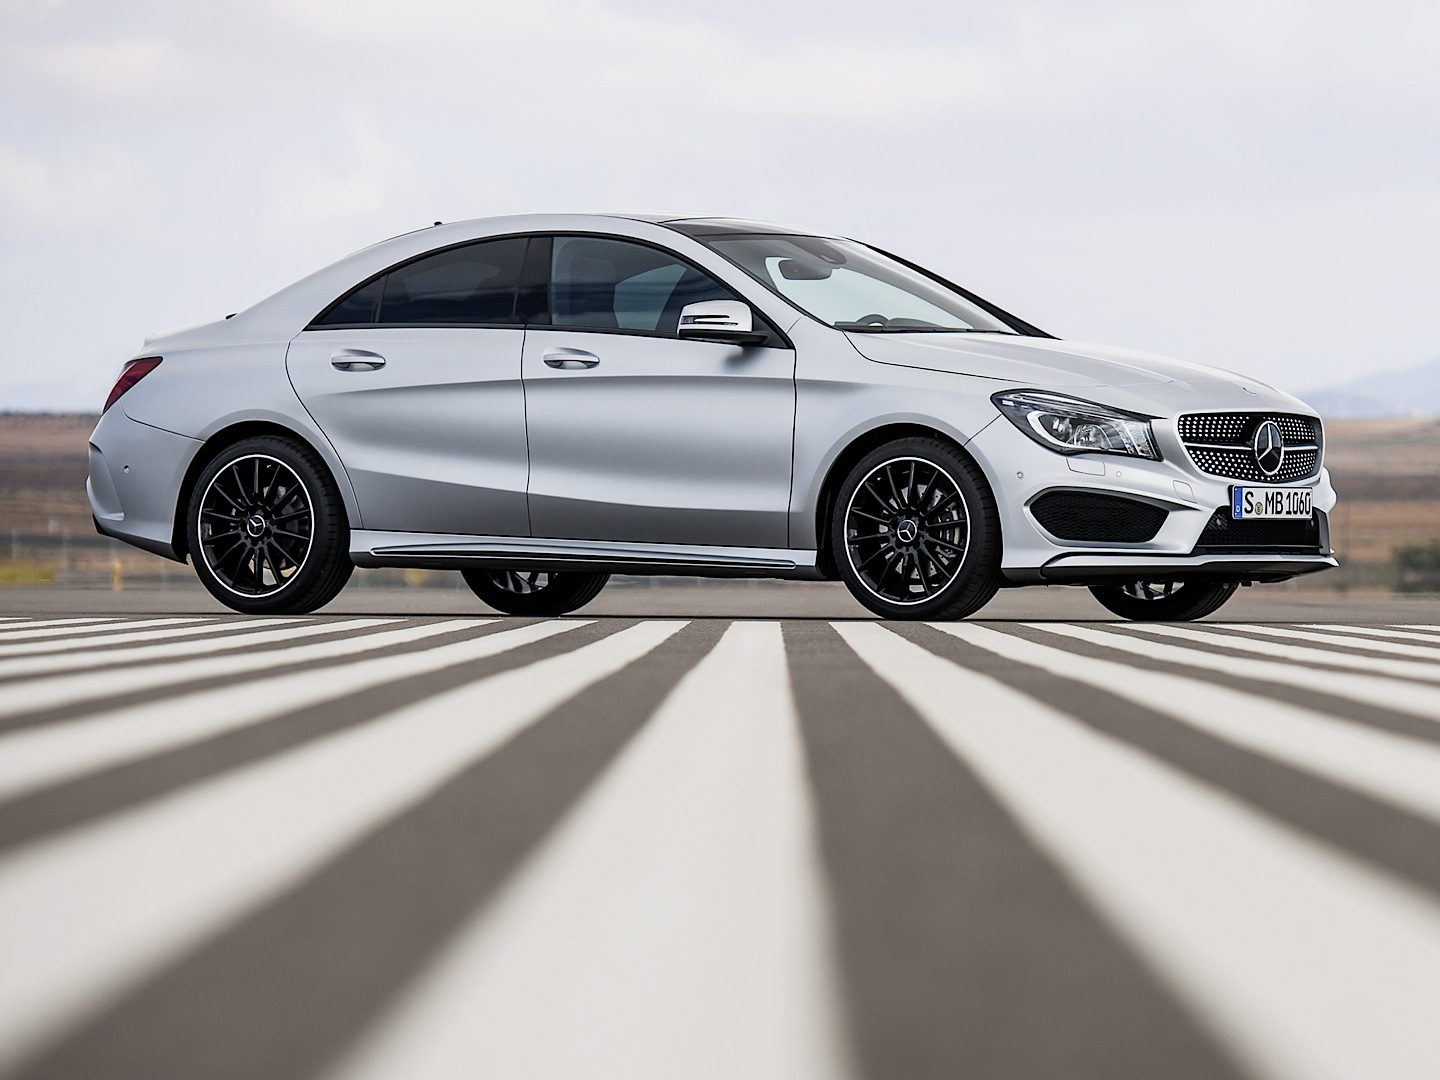 Mercedes benz cla gets reviewed by consumer reports for Best looking mercedes benz models